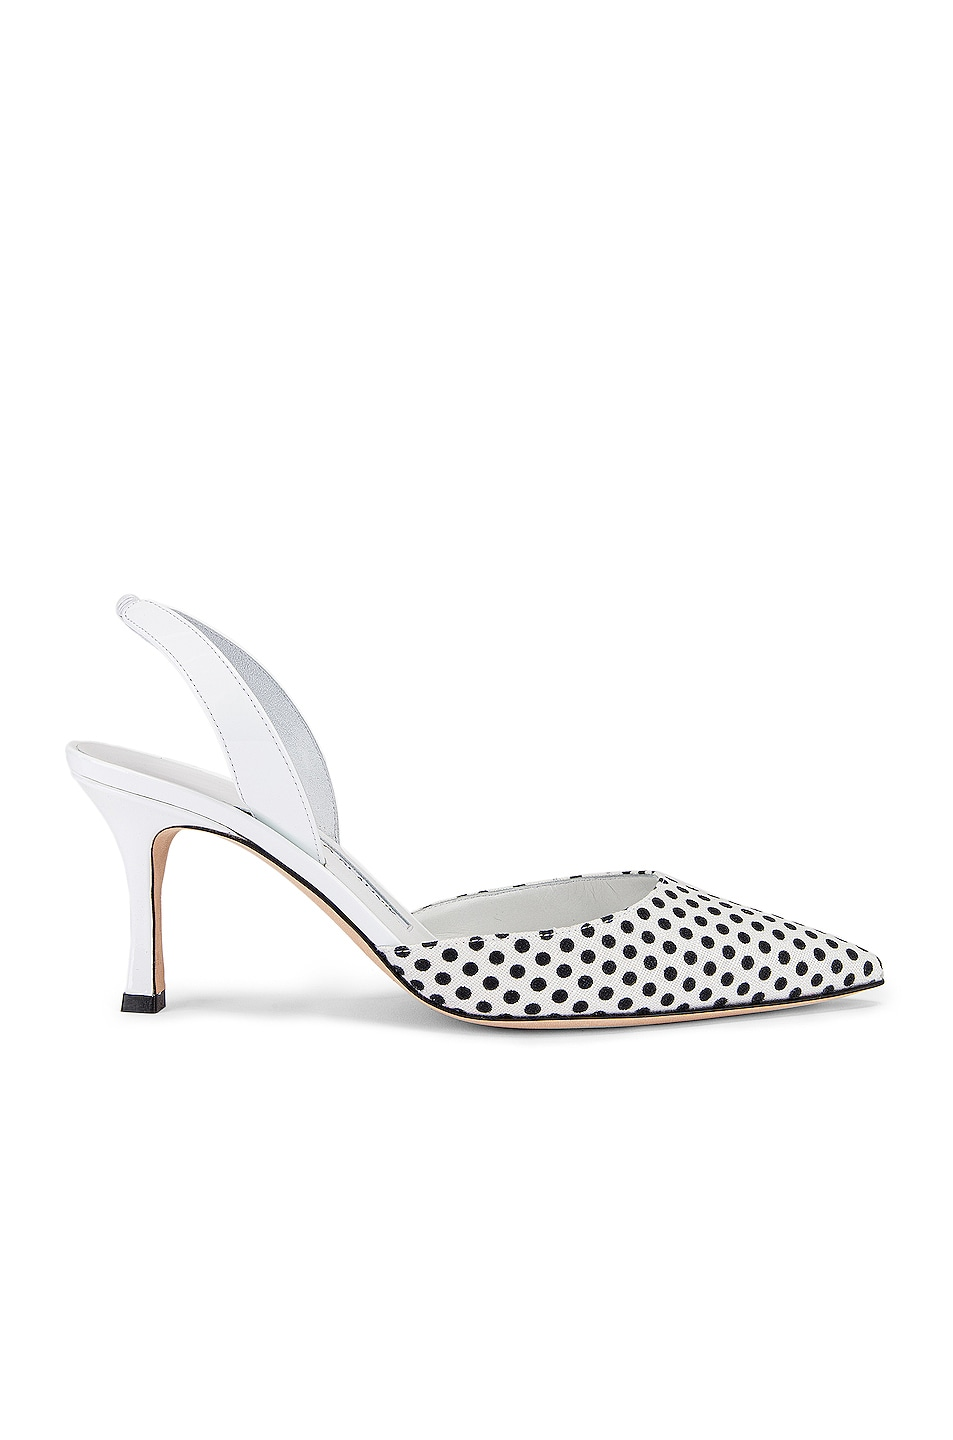 Image 1 of Manolo Blahnik Carolyne 70 Slingback in Black & White